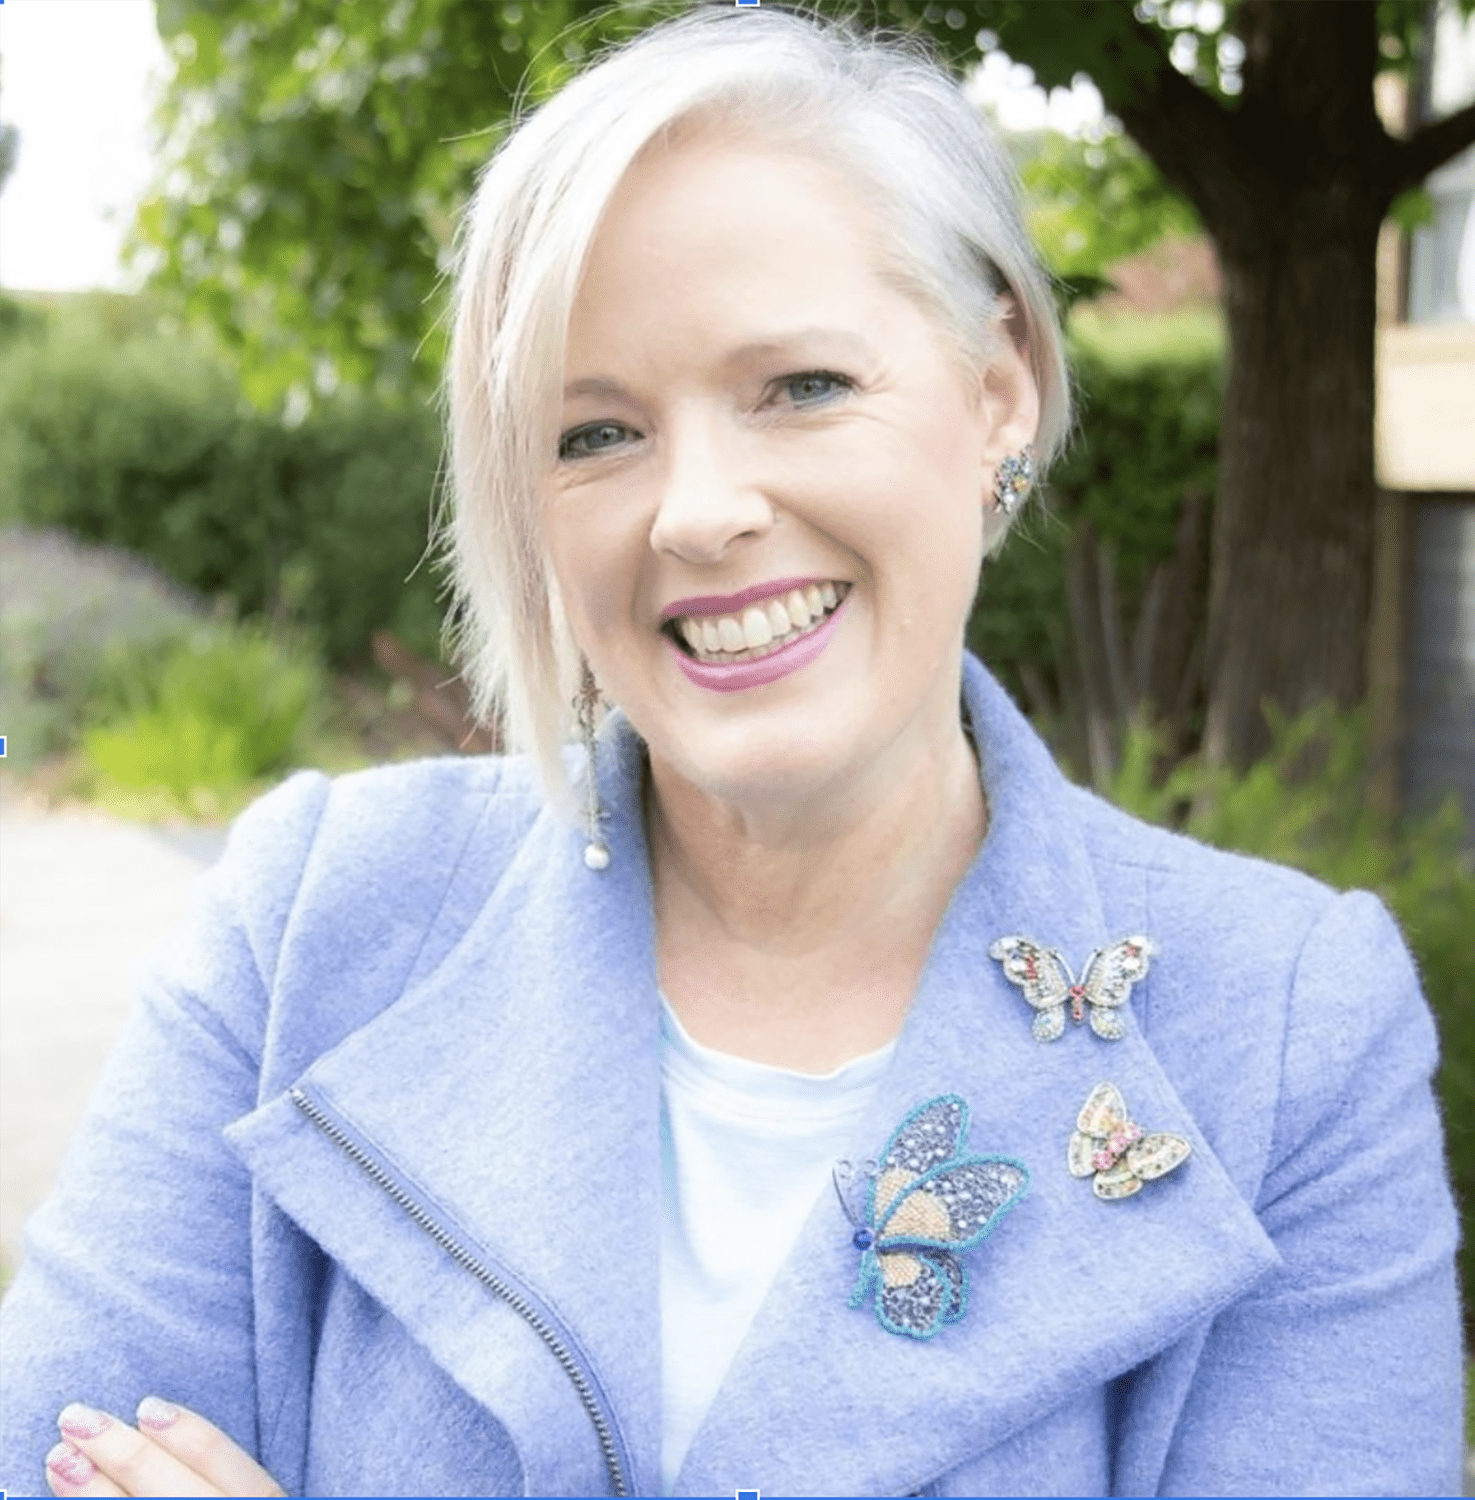 Image Consultant Imogen Lamport in blue jacket with brooches